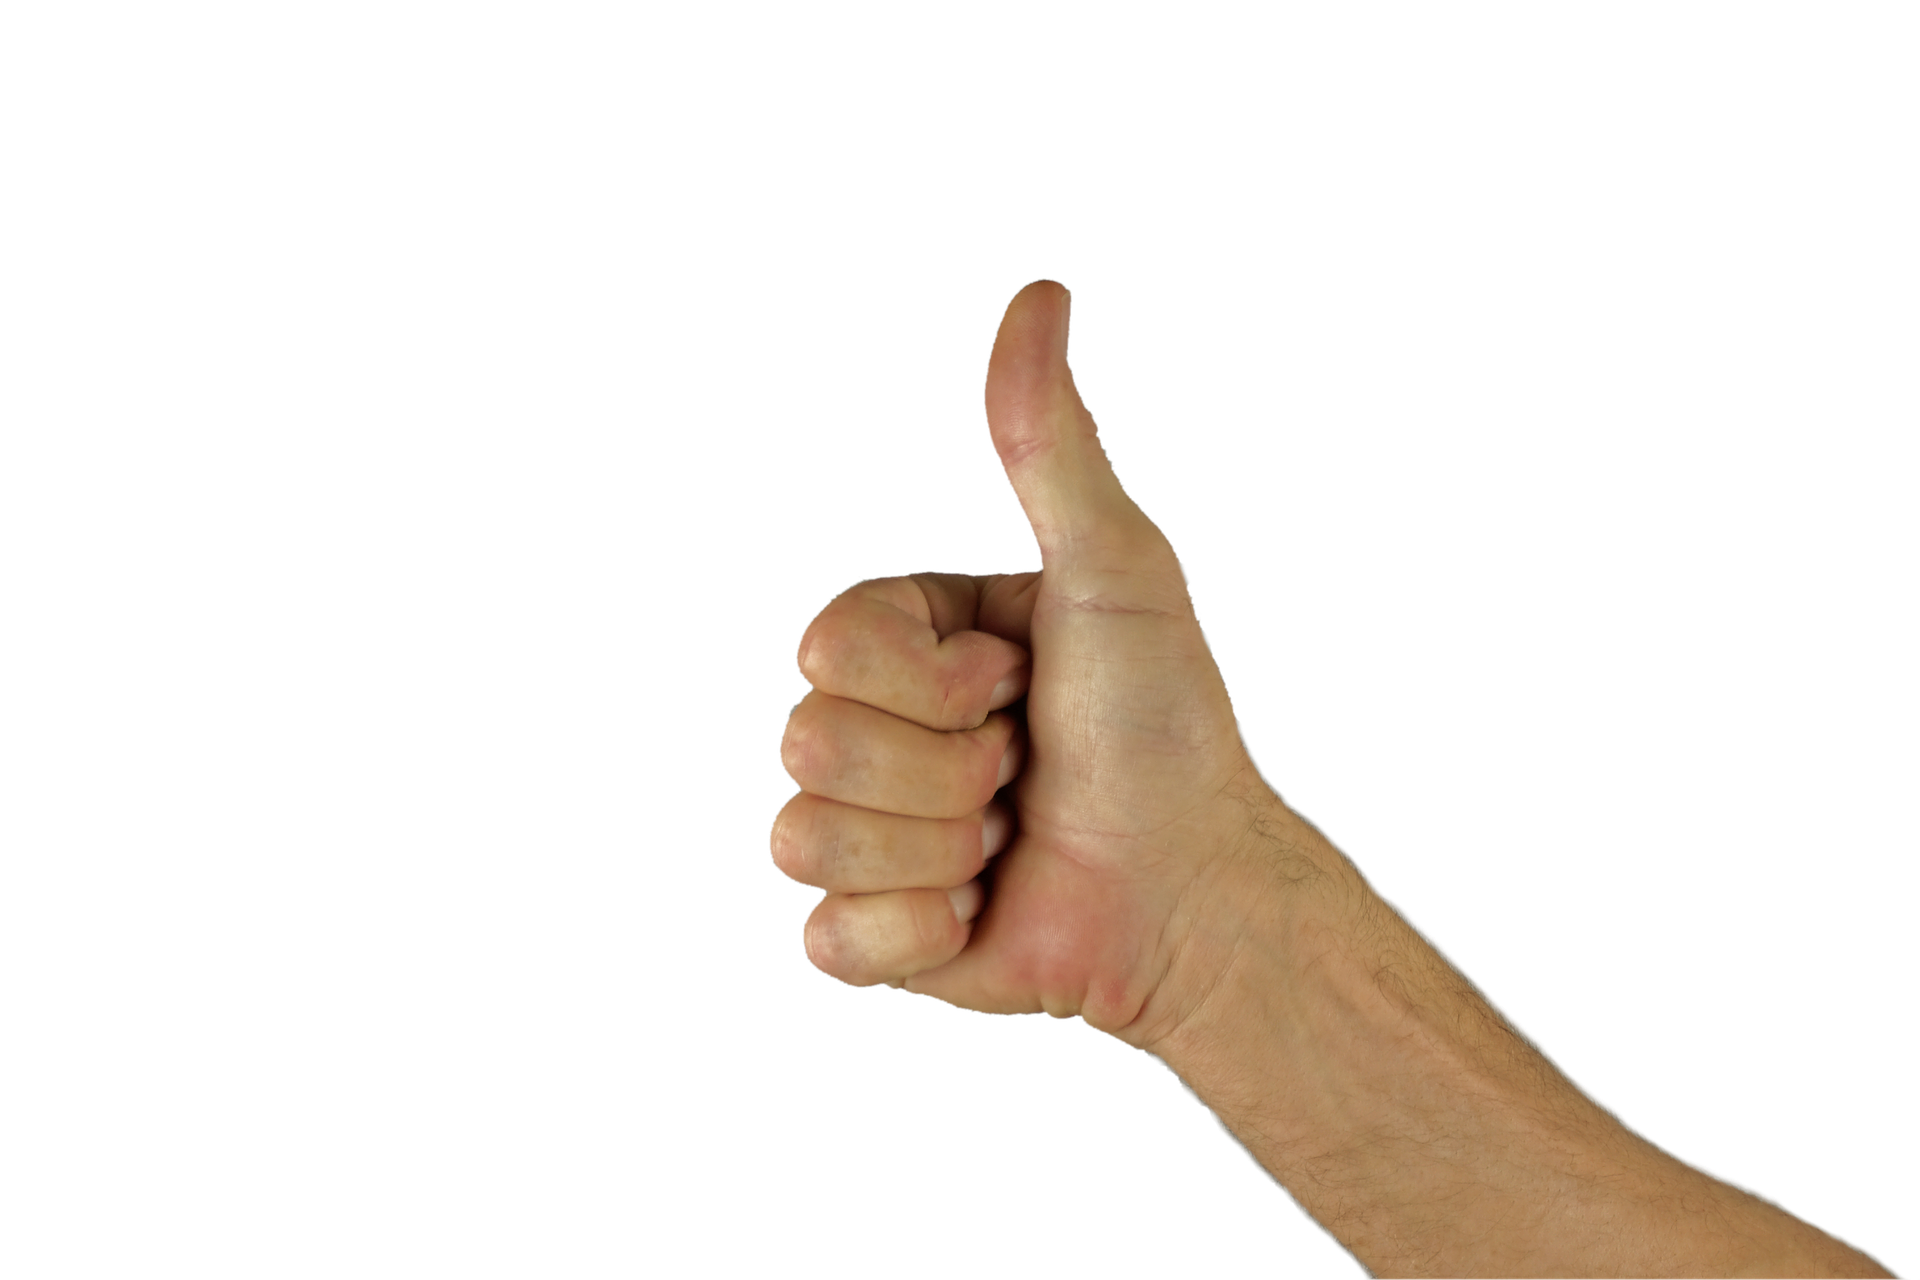 thumbs up 1006172 1920 - Home